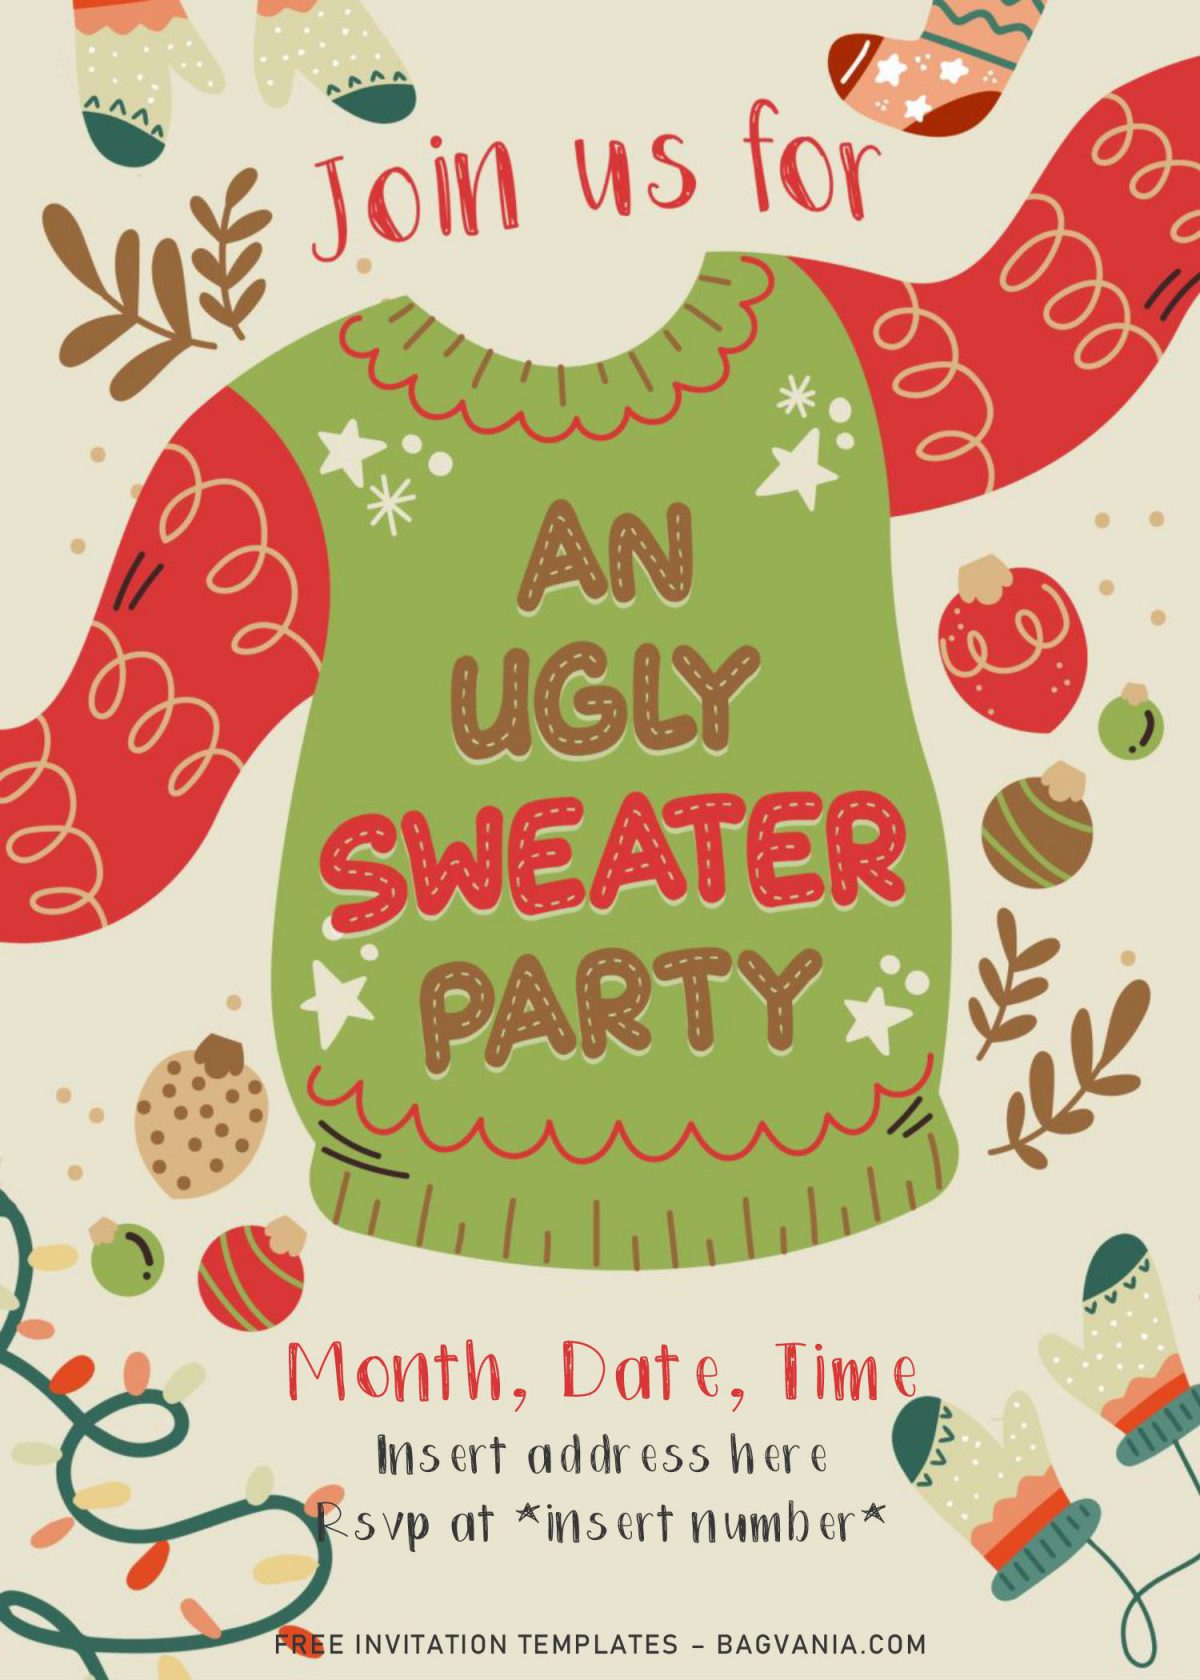 Free Winter Ugly Sweater Birthday Party Invitation Templates For Word and has tan background and Christmas theme